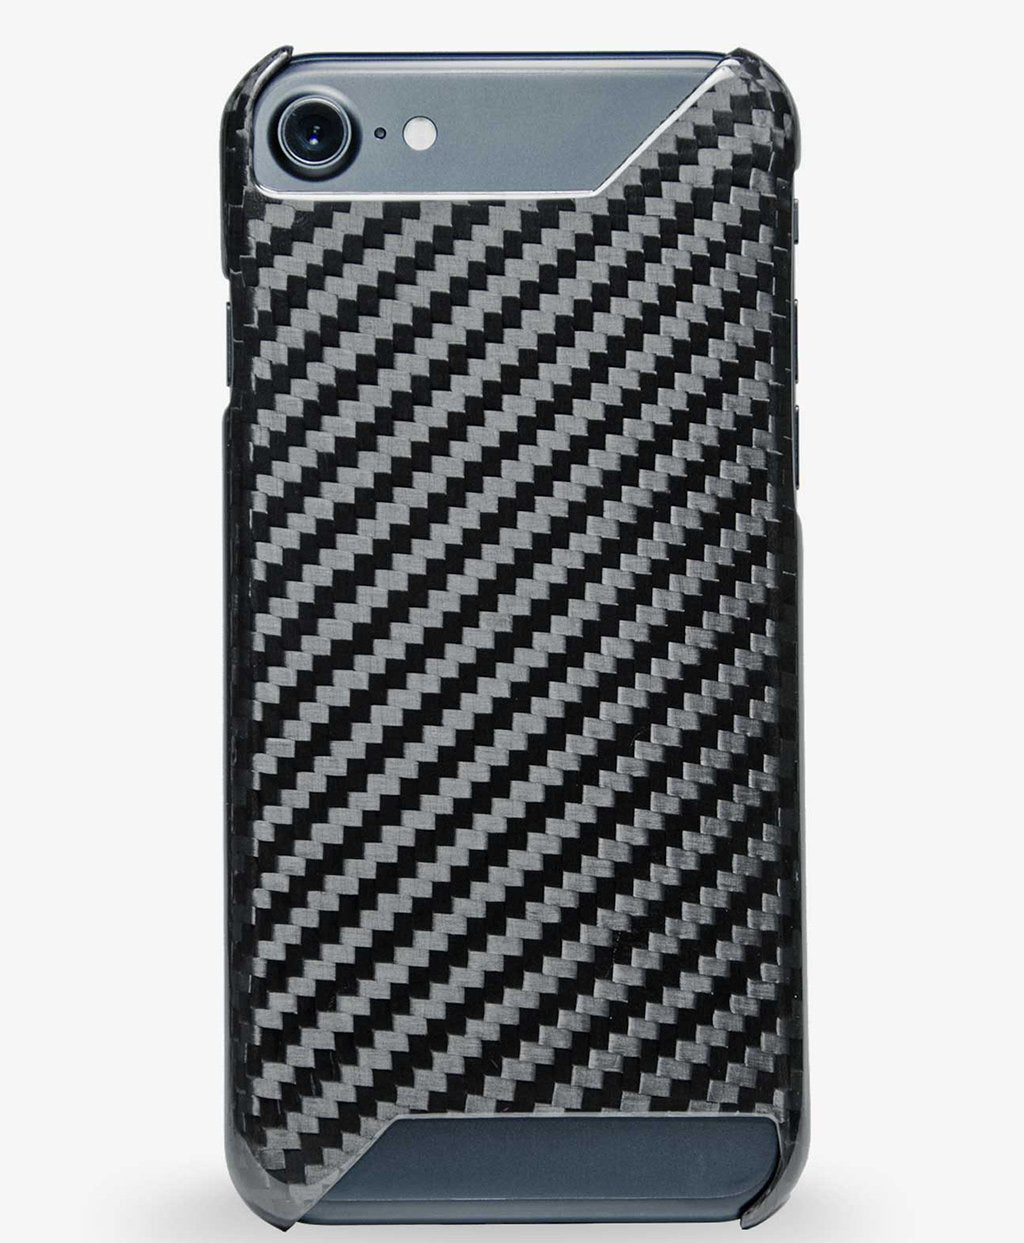 Carbon fiber iPhone 8 case, matte finish